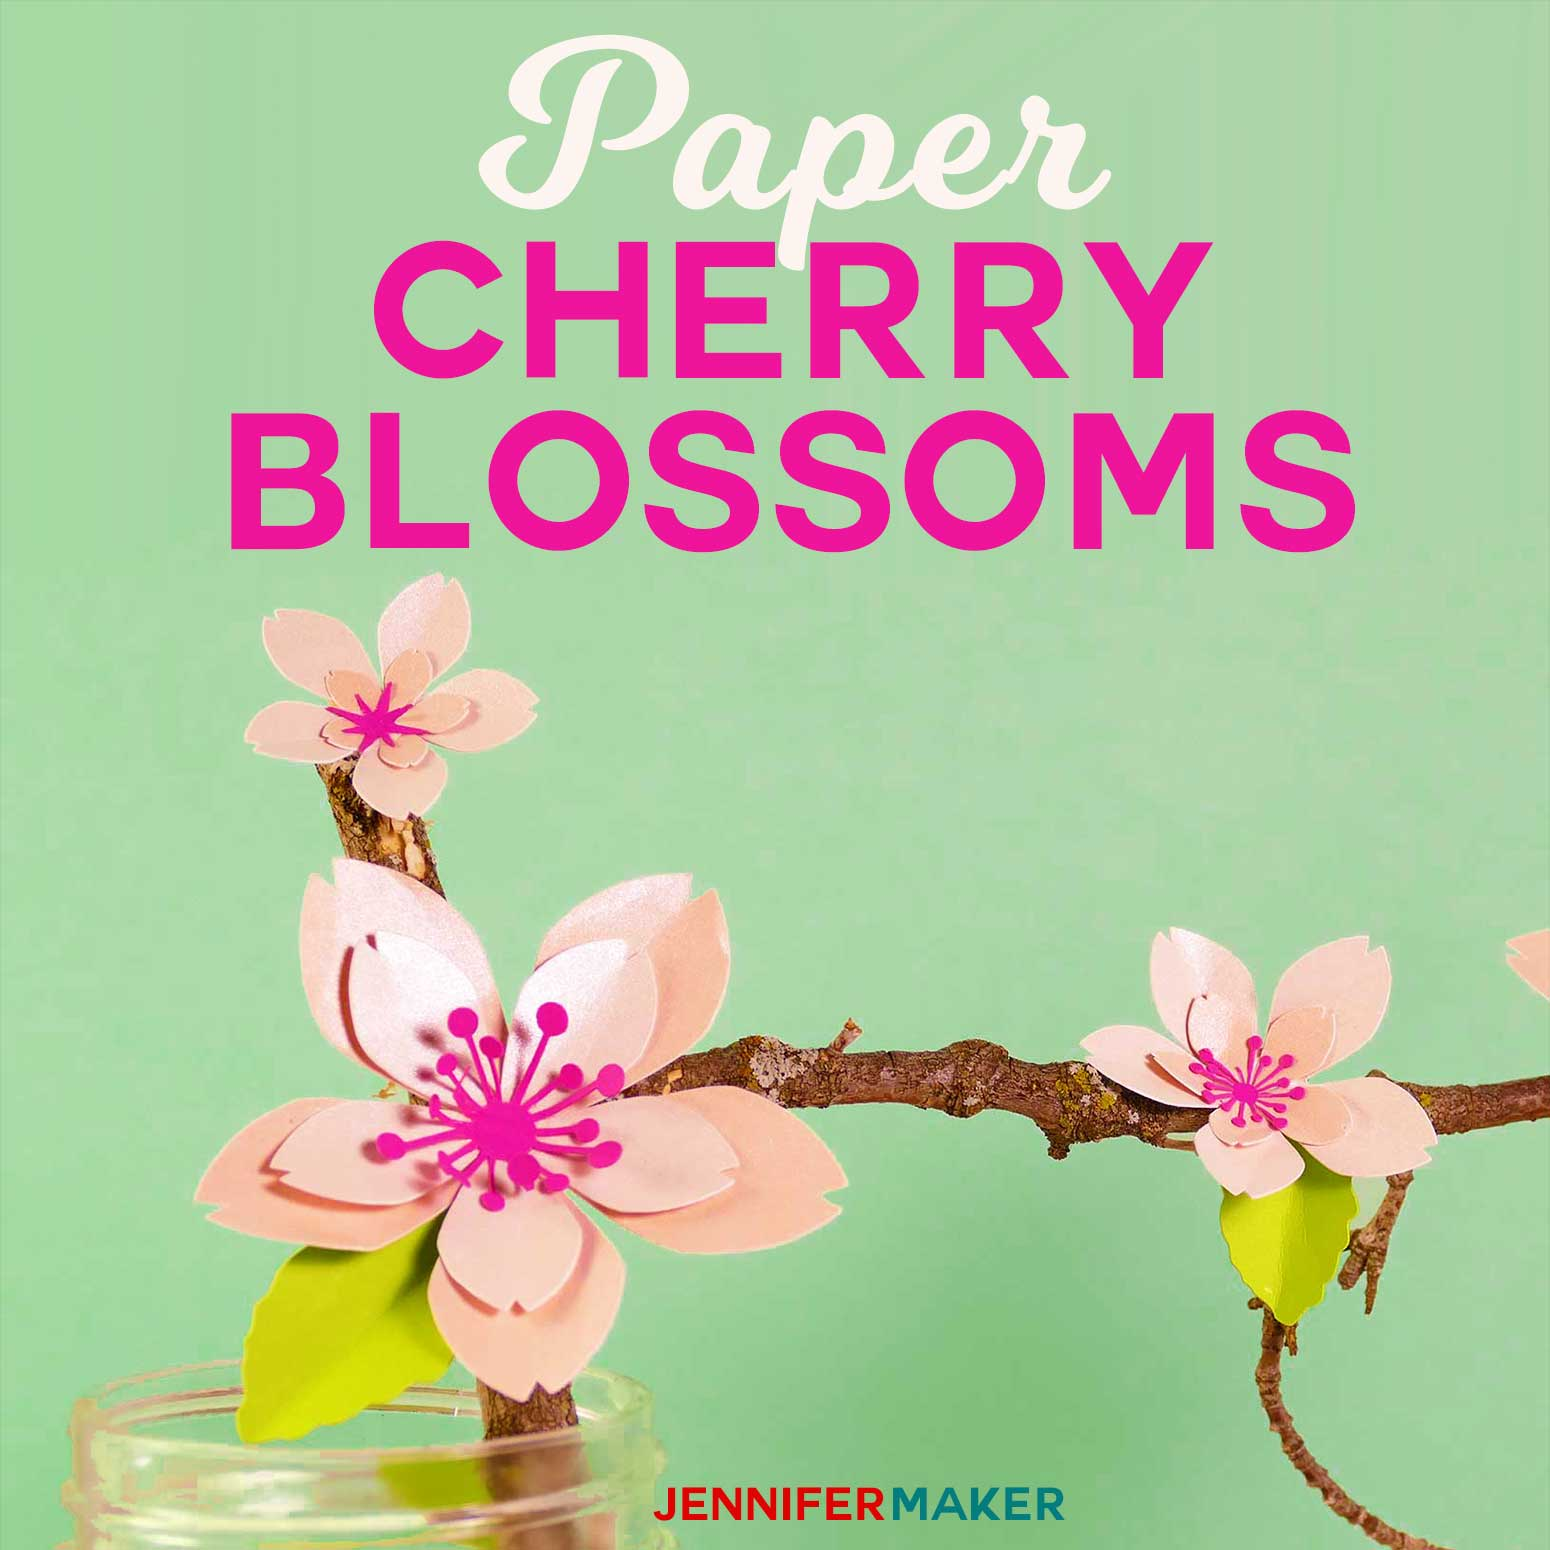 Make paper cherry blossom flowers for spring jennifer maker how to make paper cherry blossom flowers with a free pattern and tutorial papercraft mightylinksfo